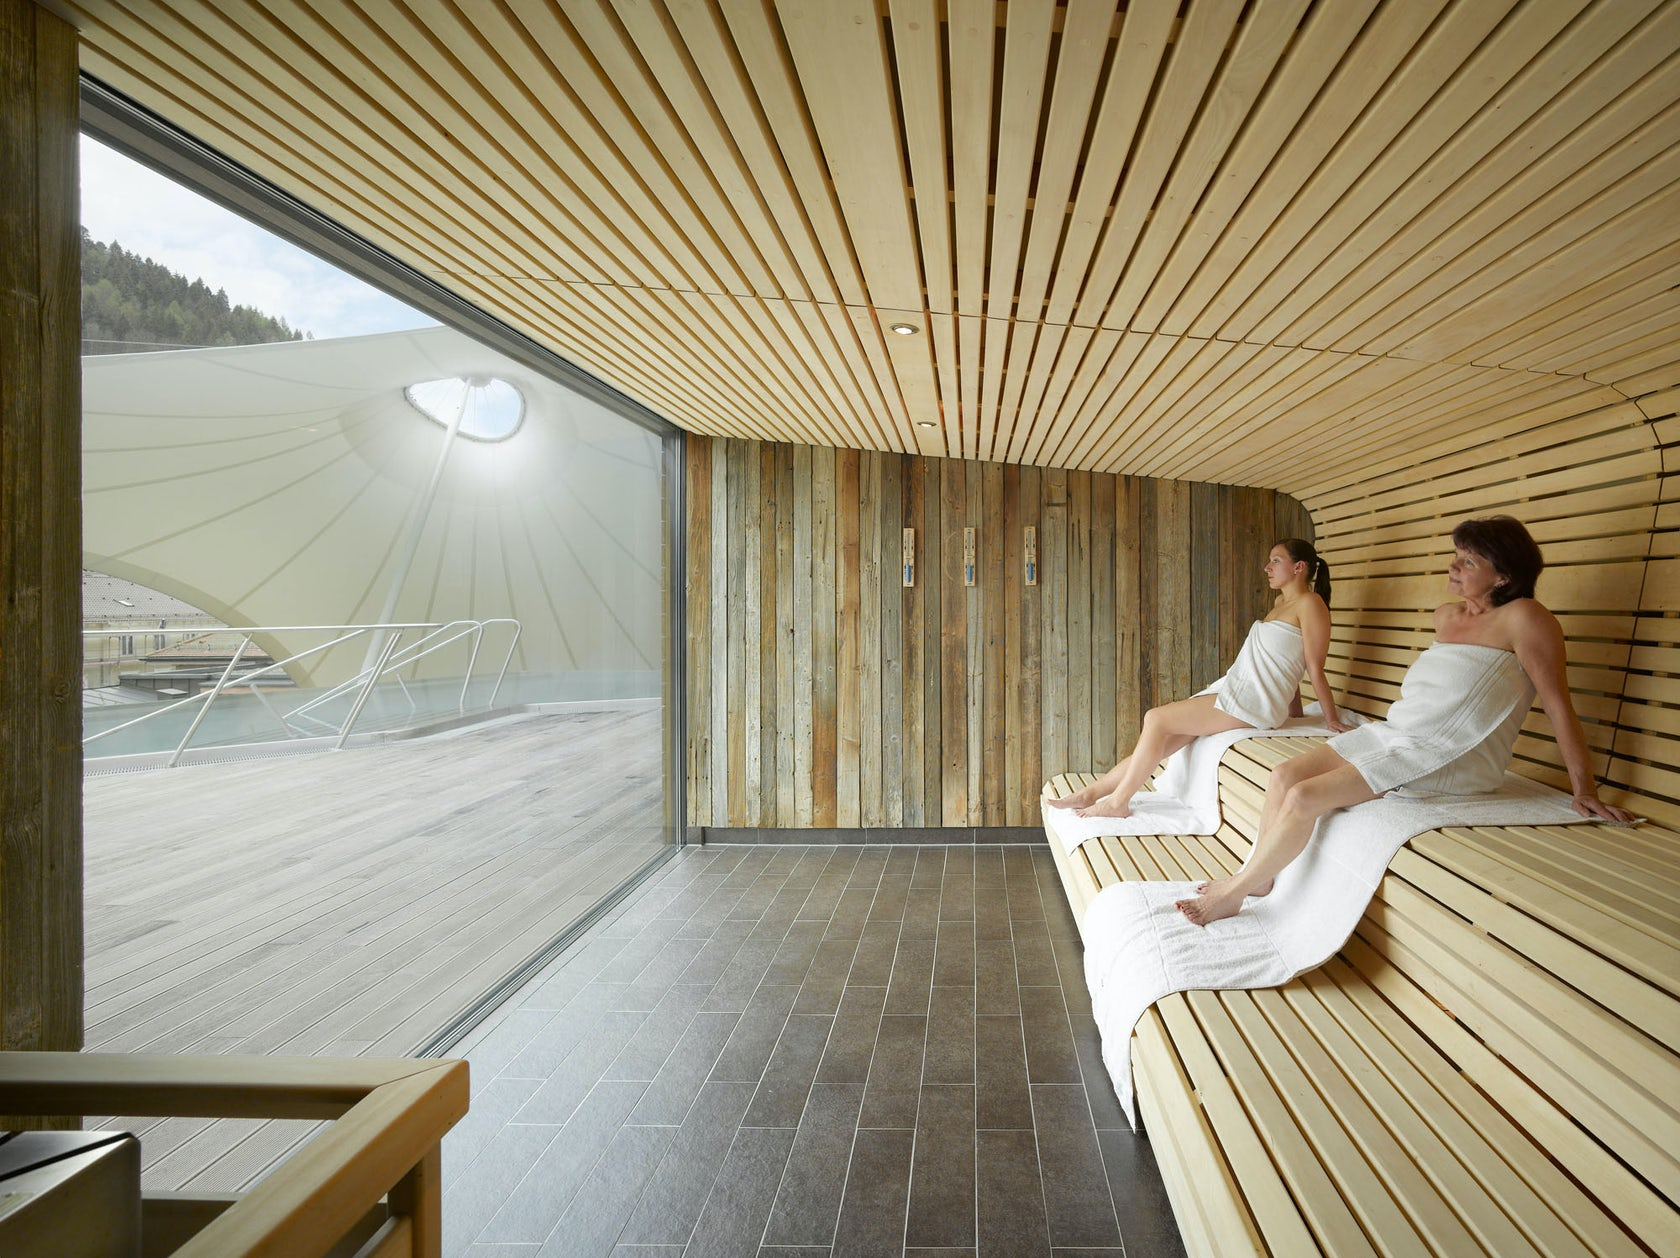 Spa and outdoor area 39 palais thermal 39 architizer for Hotel design wellness